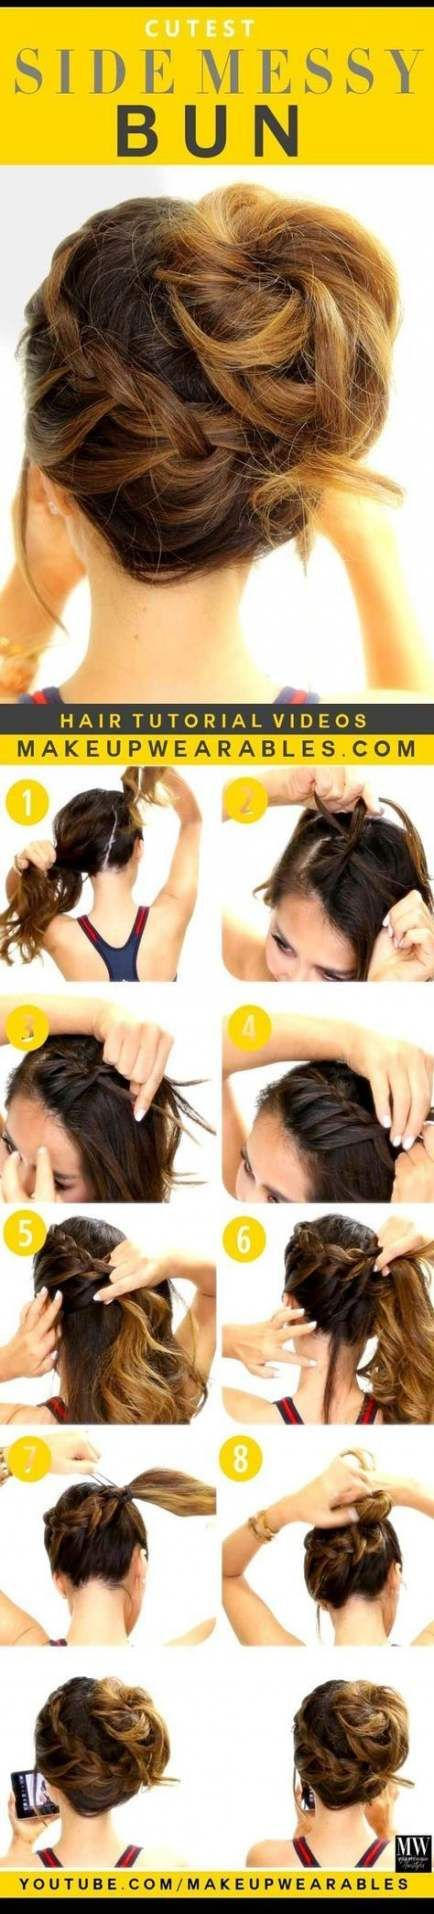 Best Wedding Hairstyles To The Side Boho Messy Buns 37 Ideas